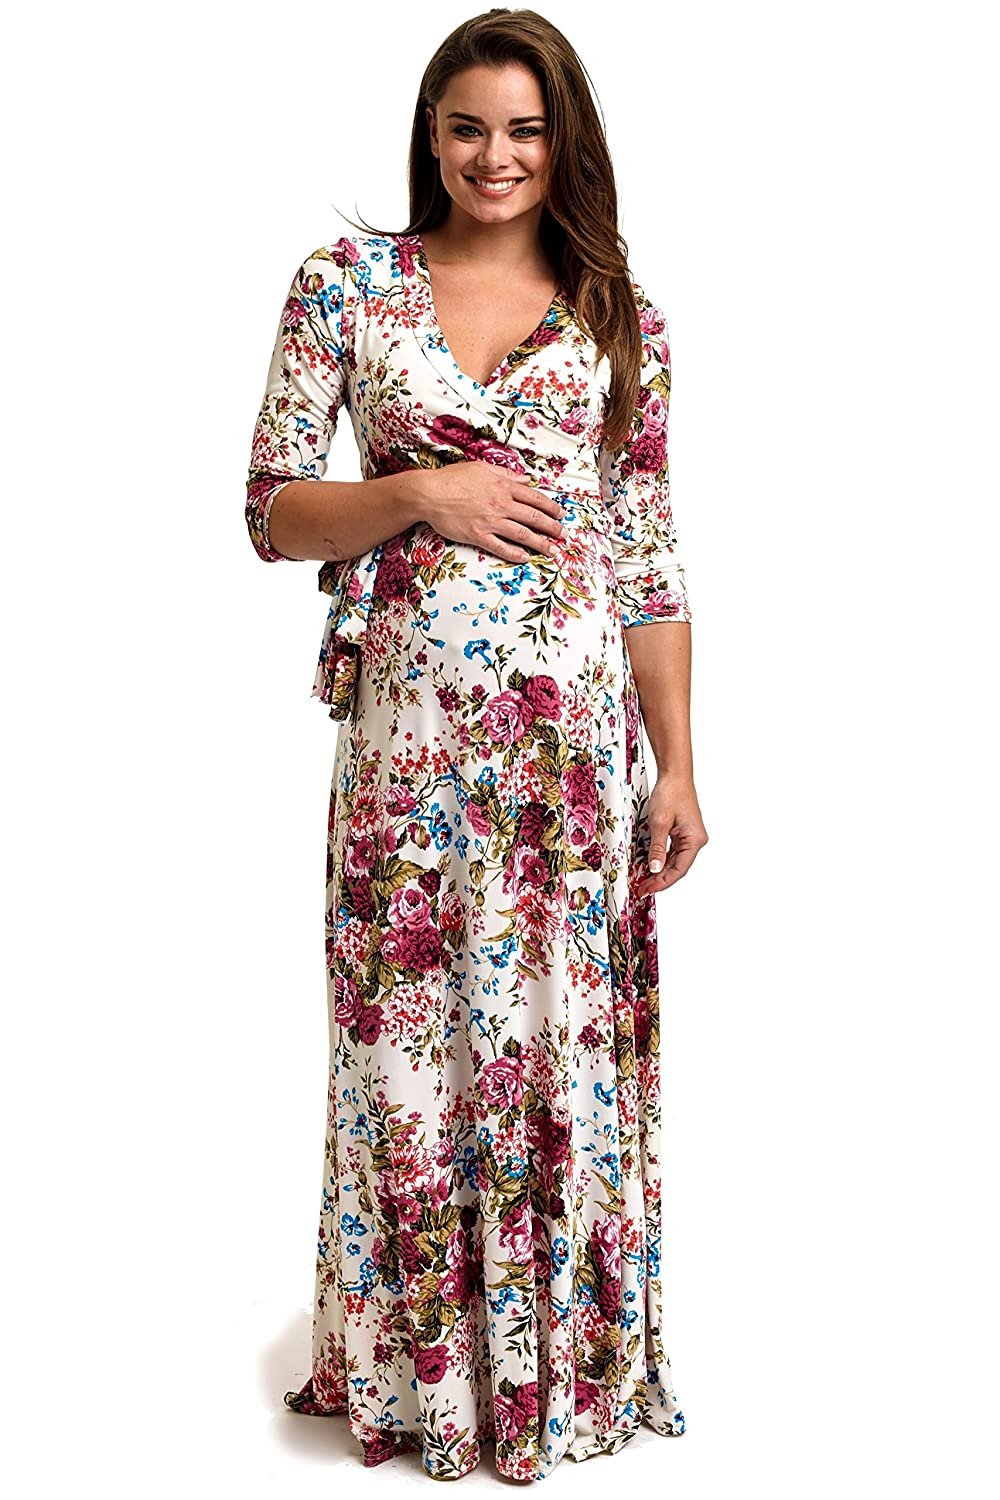 a2ddcd4a8c4 PinkBlush Maternity Floral Draped 3/4 Sleeve Maxi Dress at Amazon Women's  Clothing store: